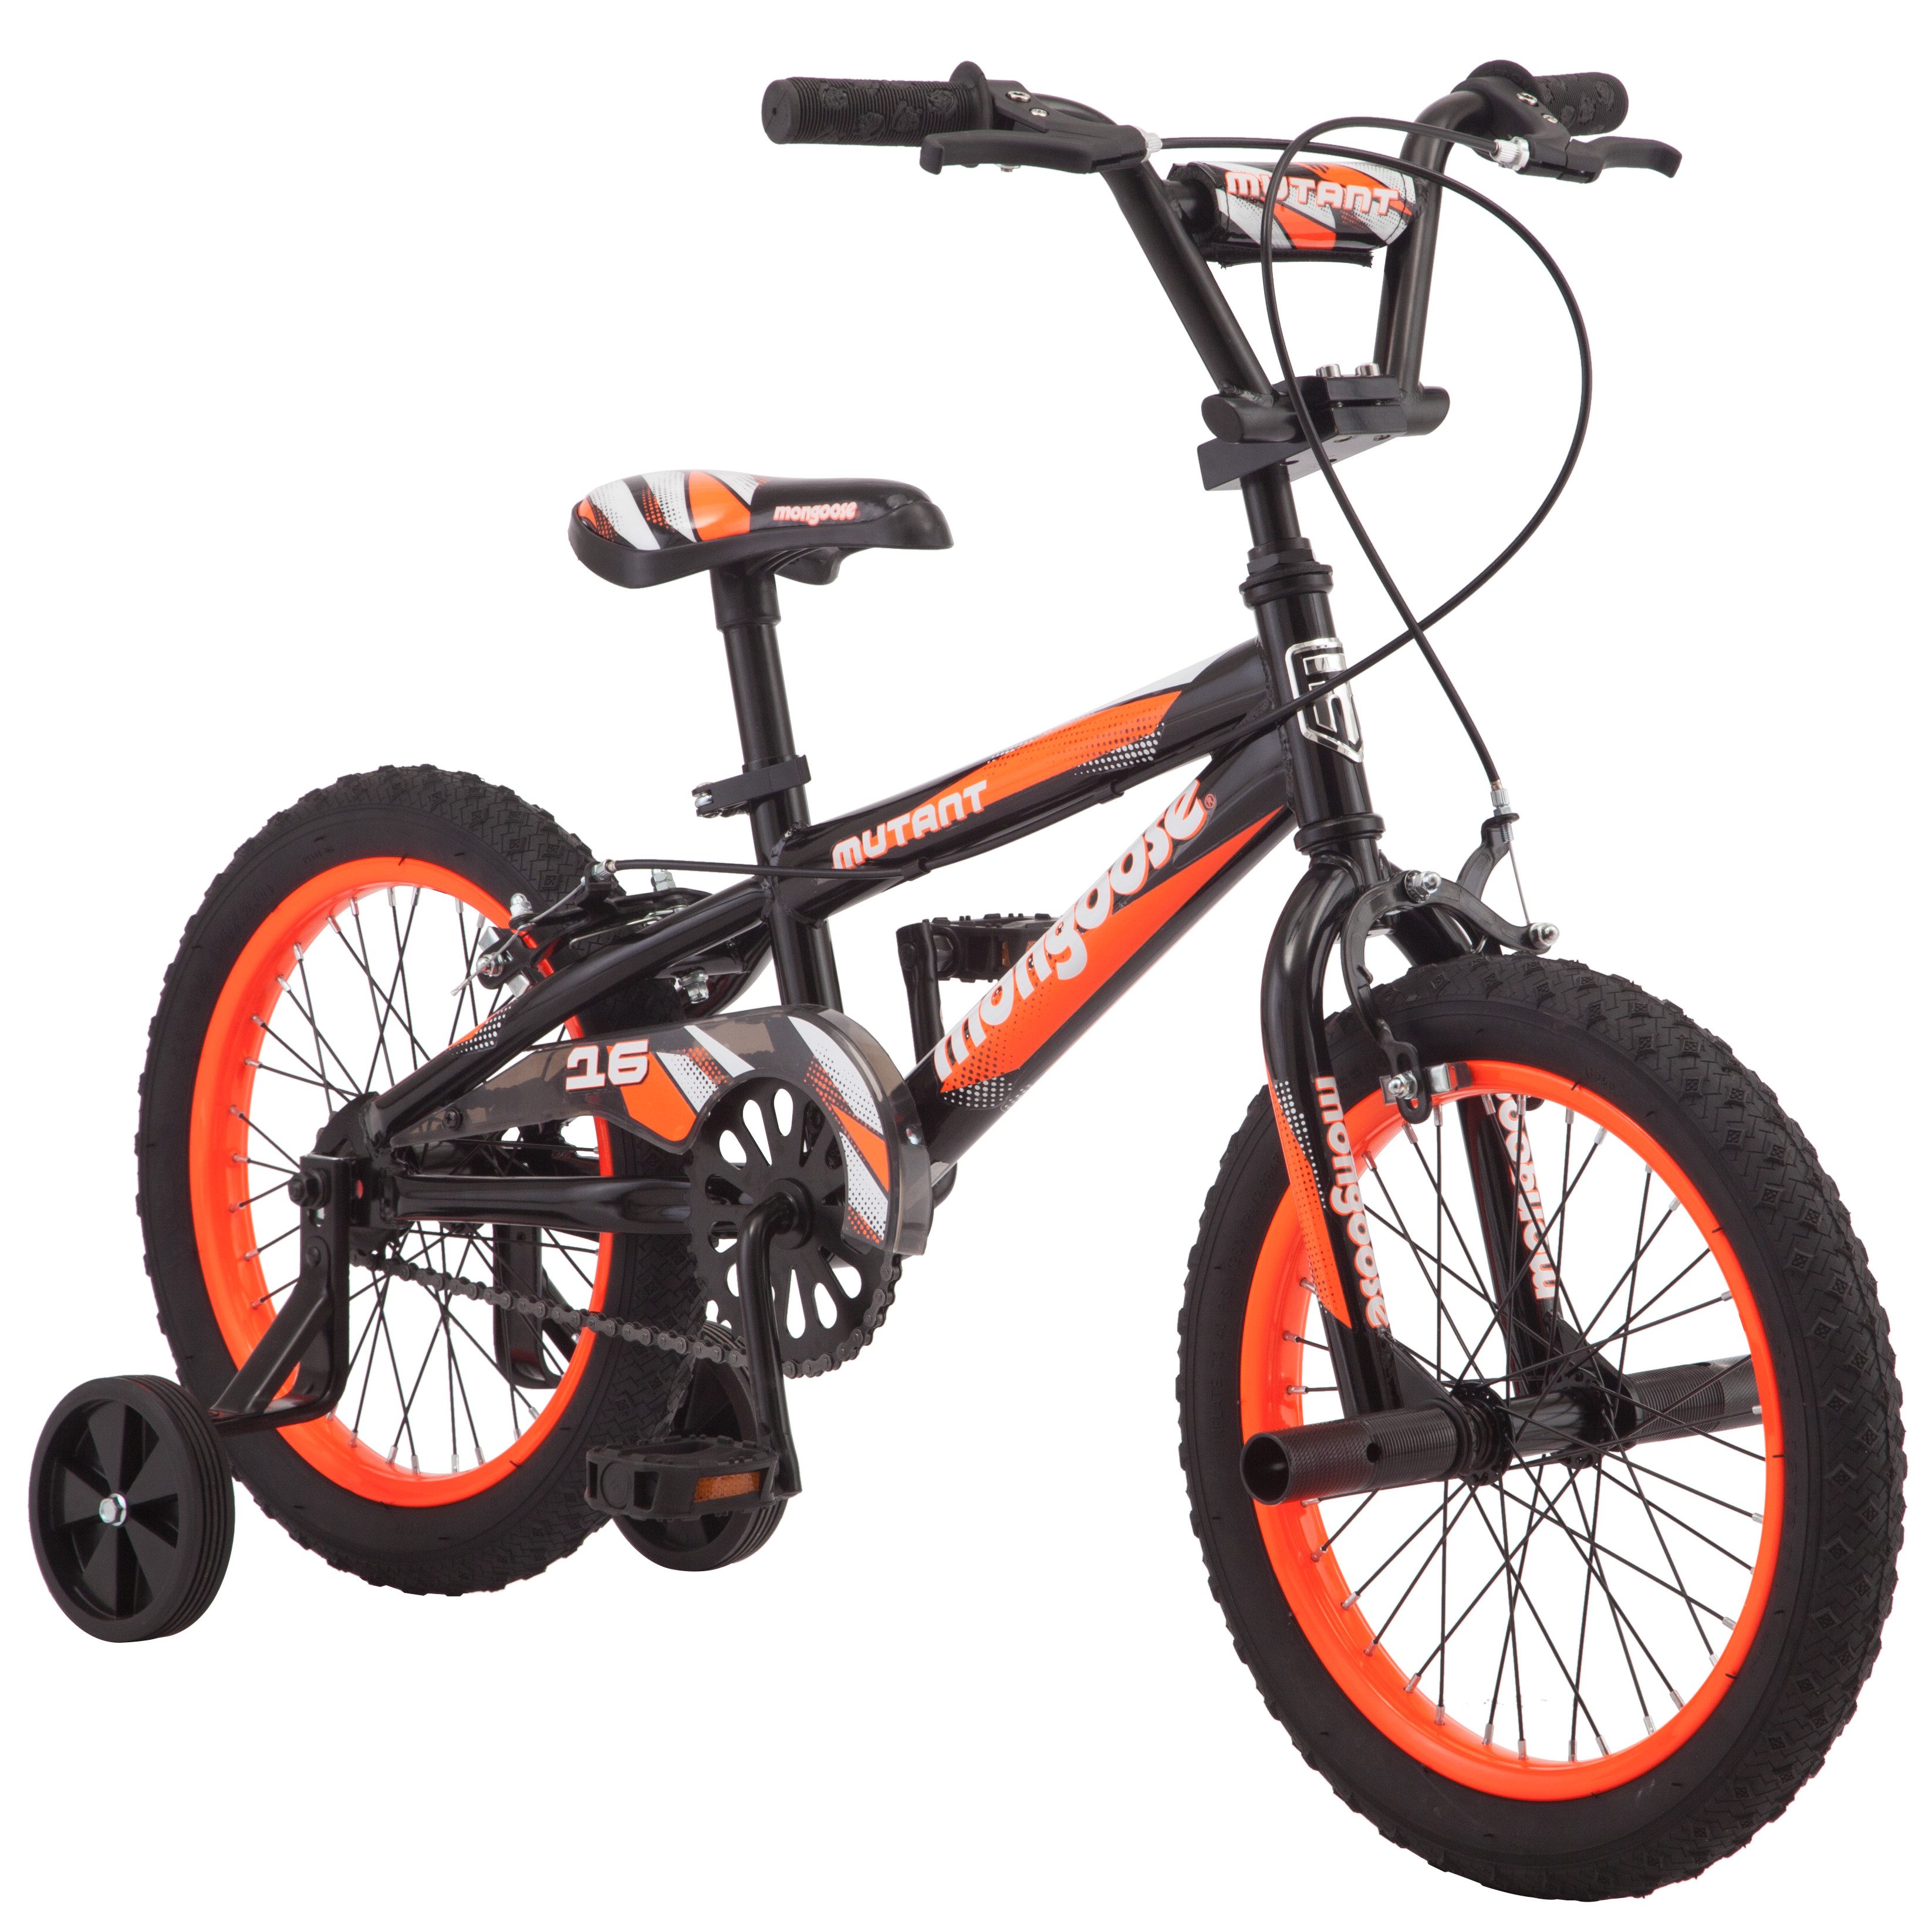 "16"" Mongoose Mutant Boys' Bike, Black & Orange by Pacific Cycle"